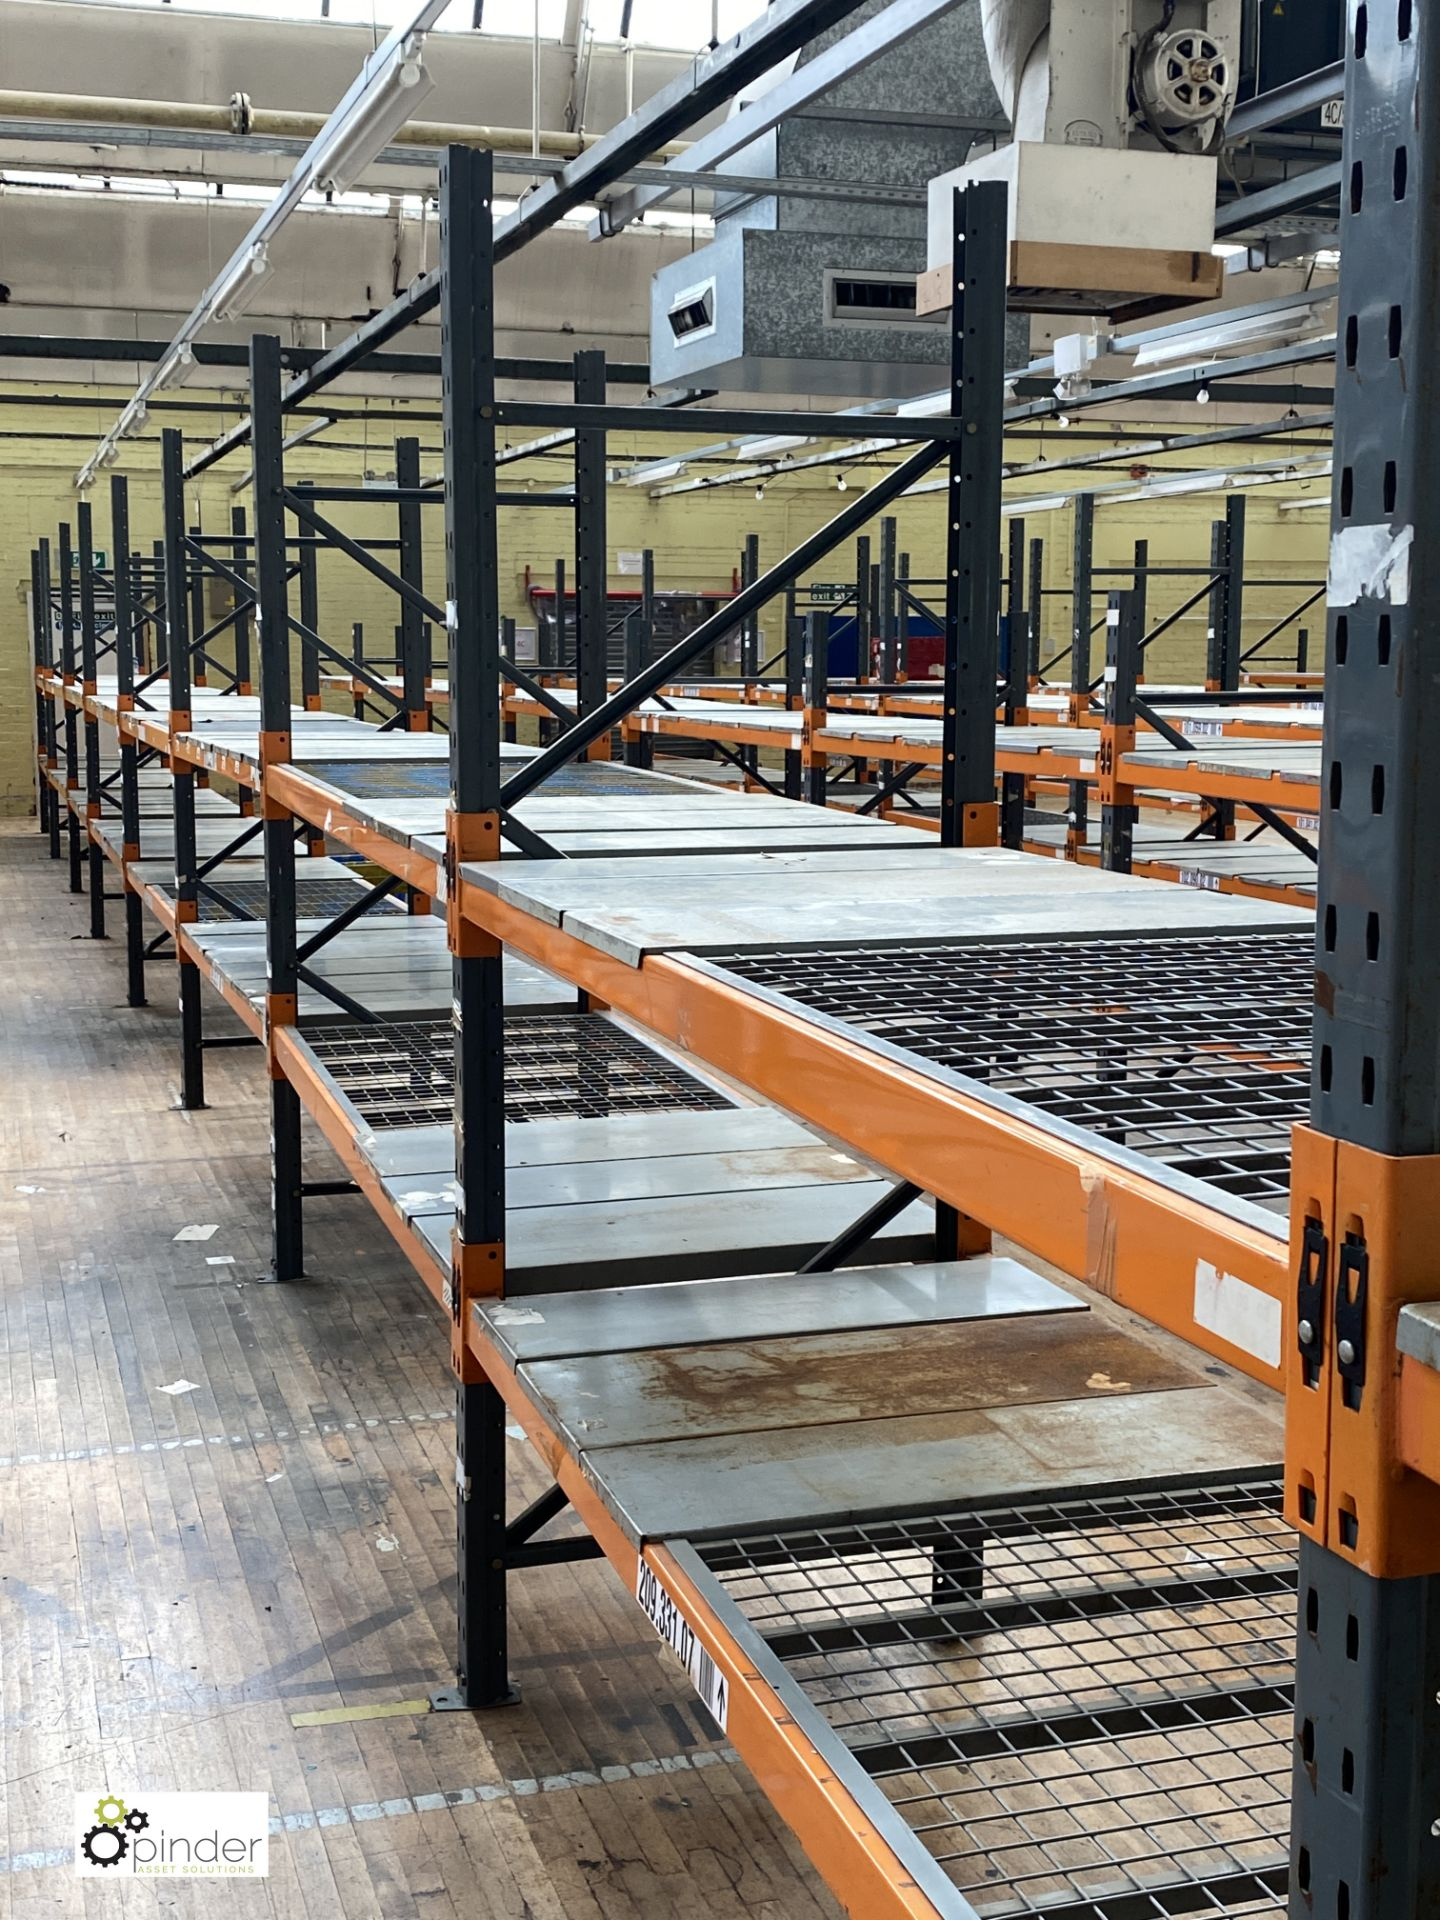 10 bays Dexion Speedlock boltless Racking, comprising 11 uprights 2440mm x 910mm, 40 beams 2450mm, - Image 4 of 4